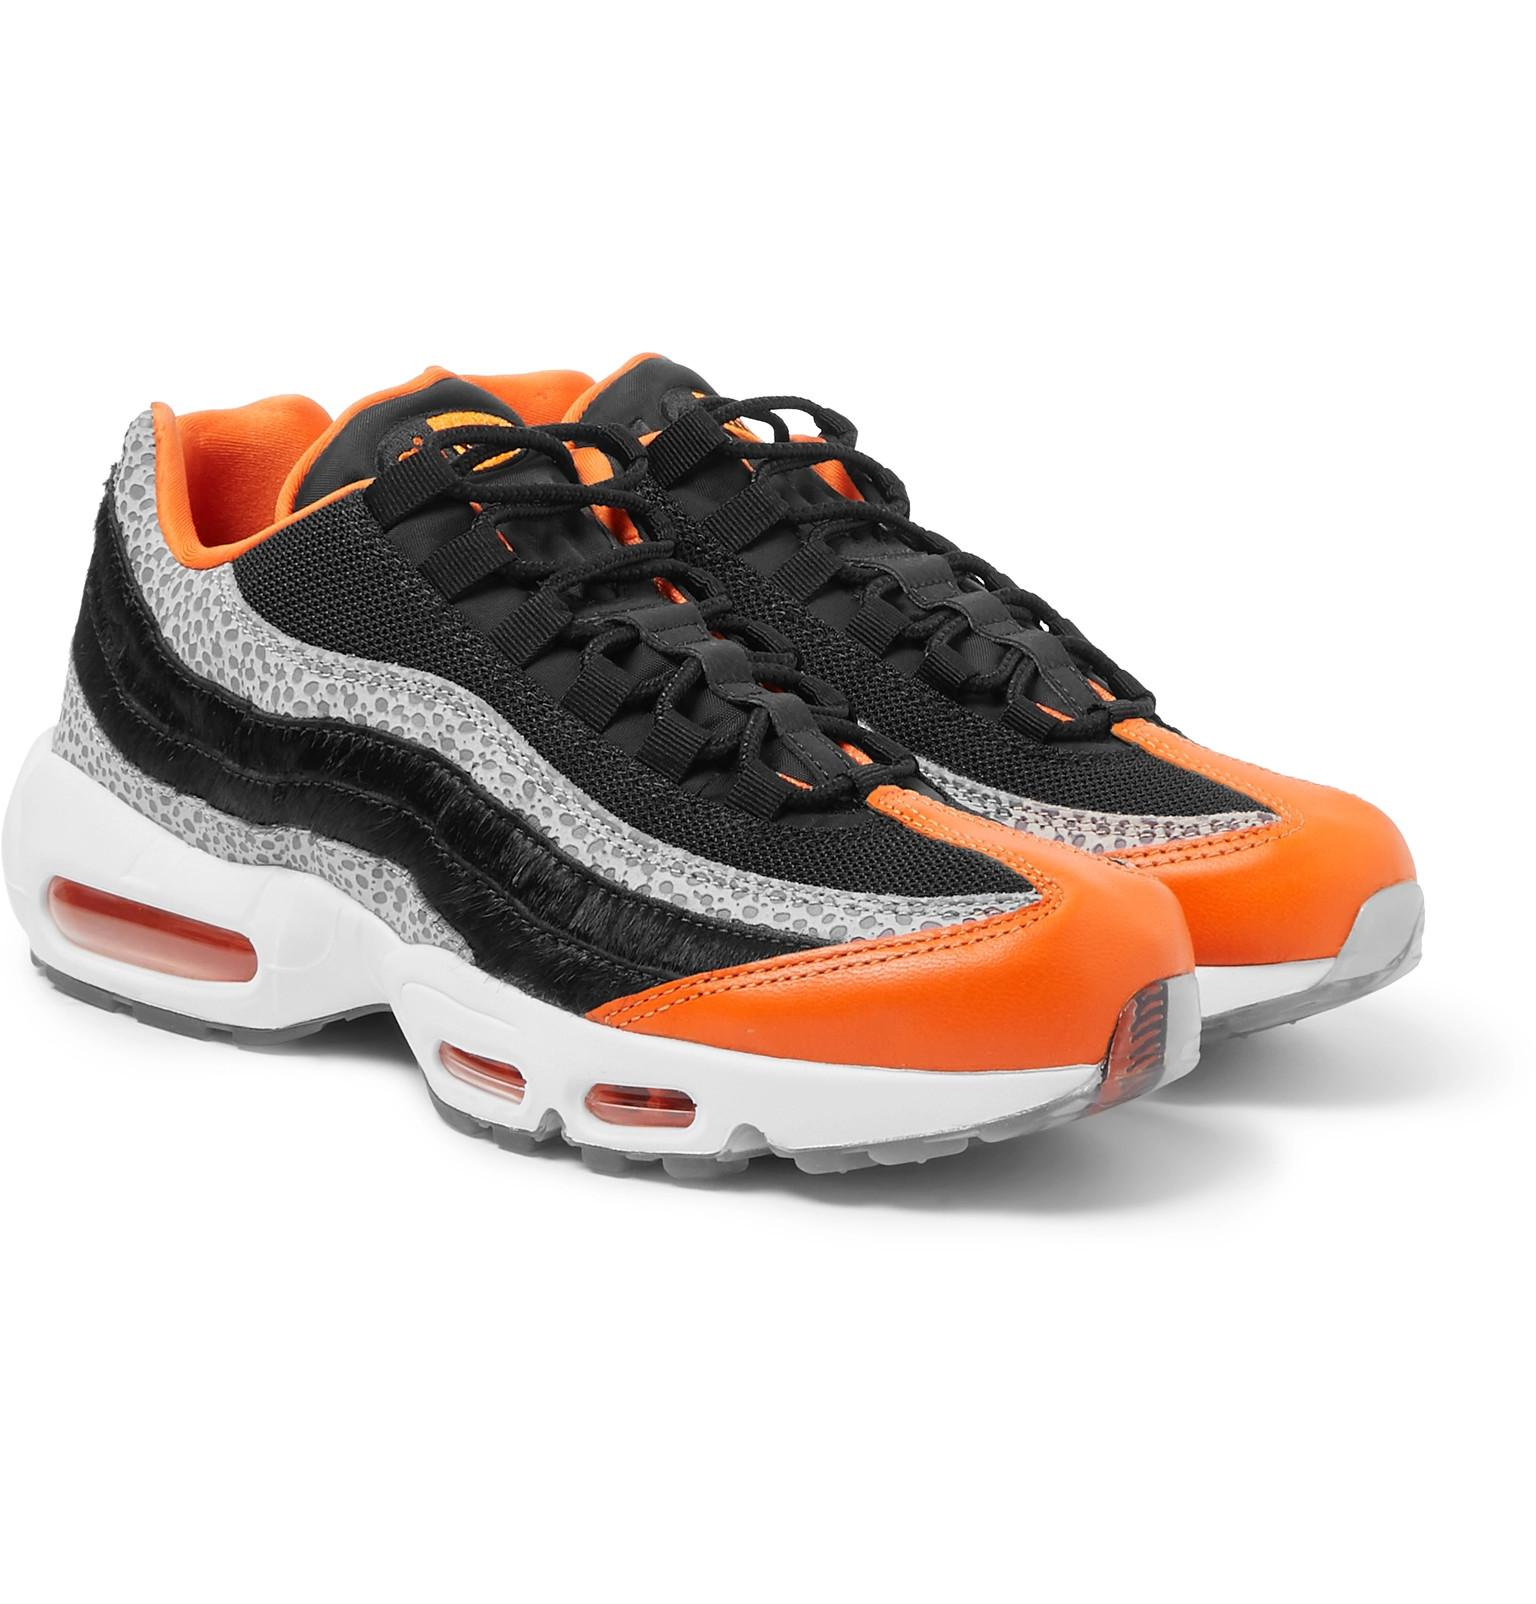 19674fa55a Nike Air Max 95 Panelled Leather And Mesh Sneakers in Black for Men ...